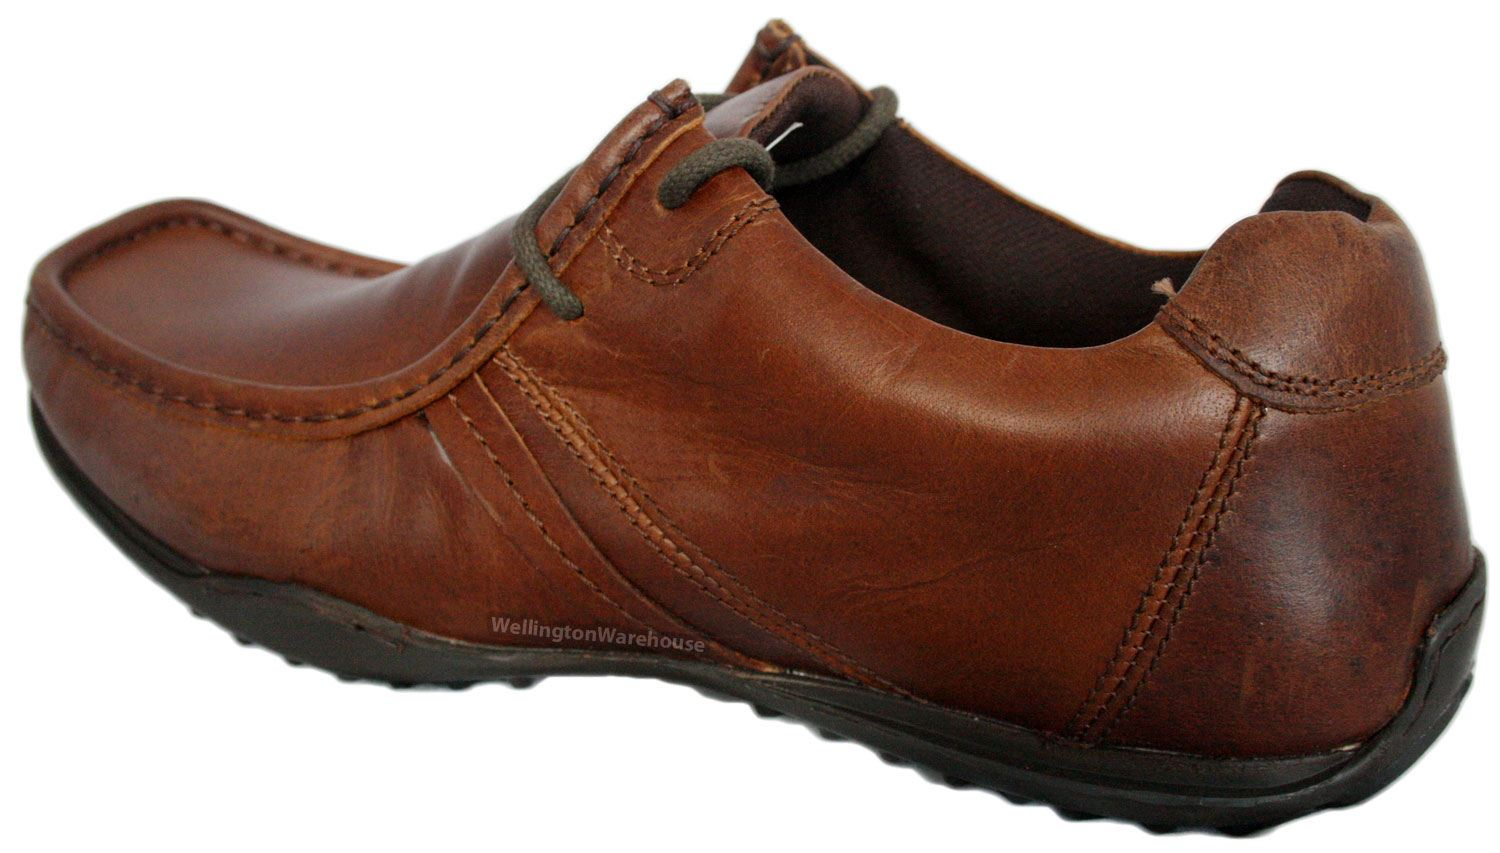 Red Tape Kinder Mens tan brown casual comfort leather lace up smart shoes